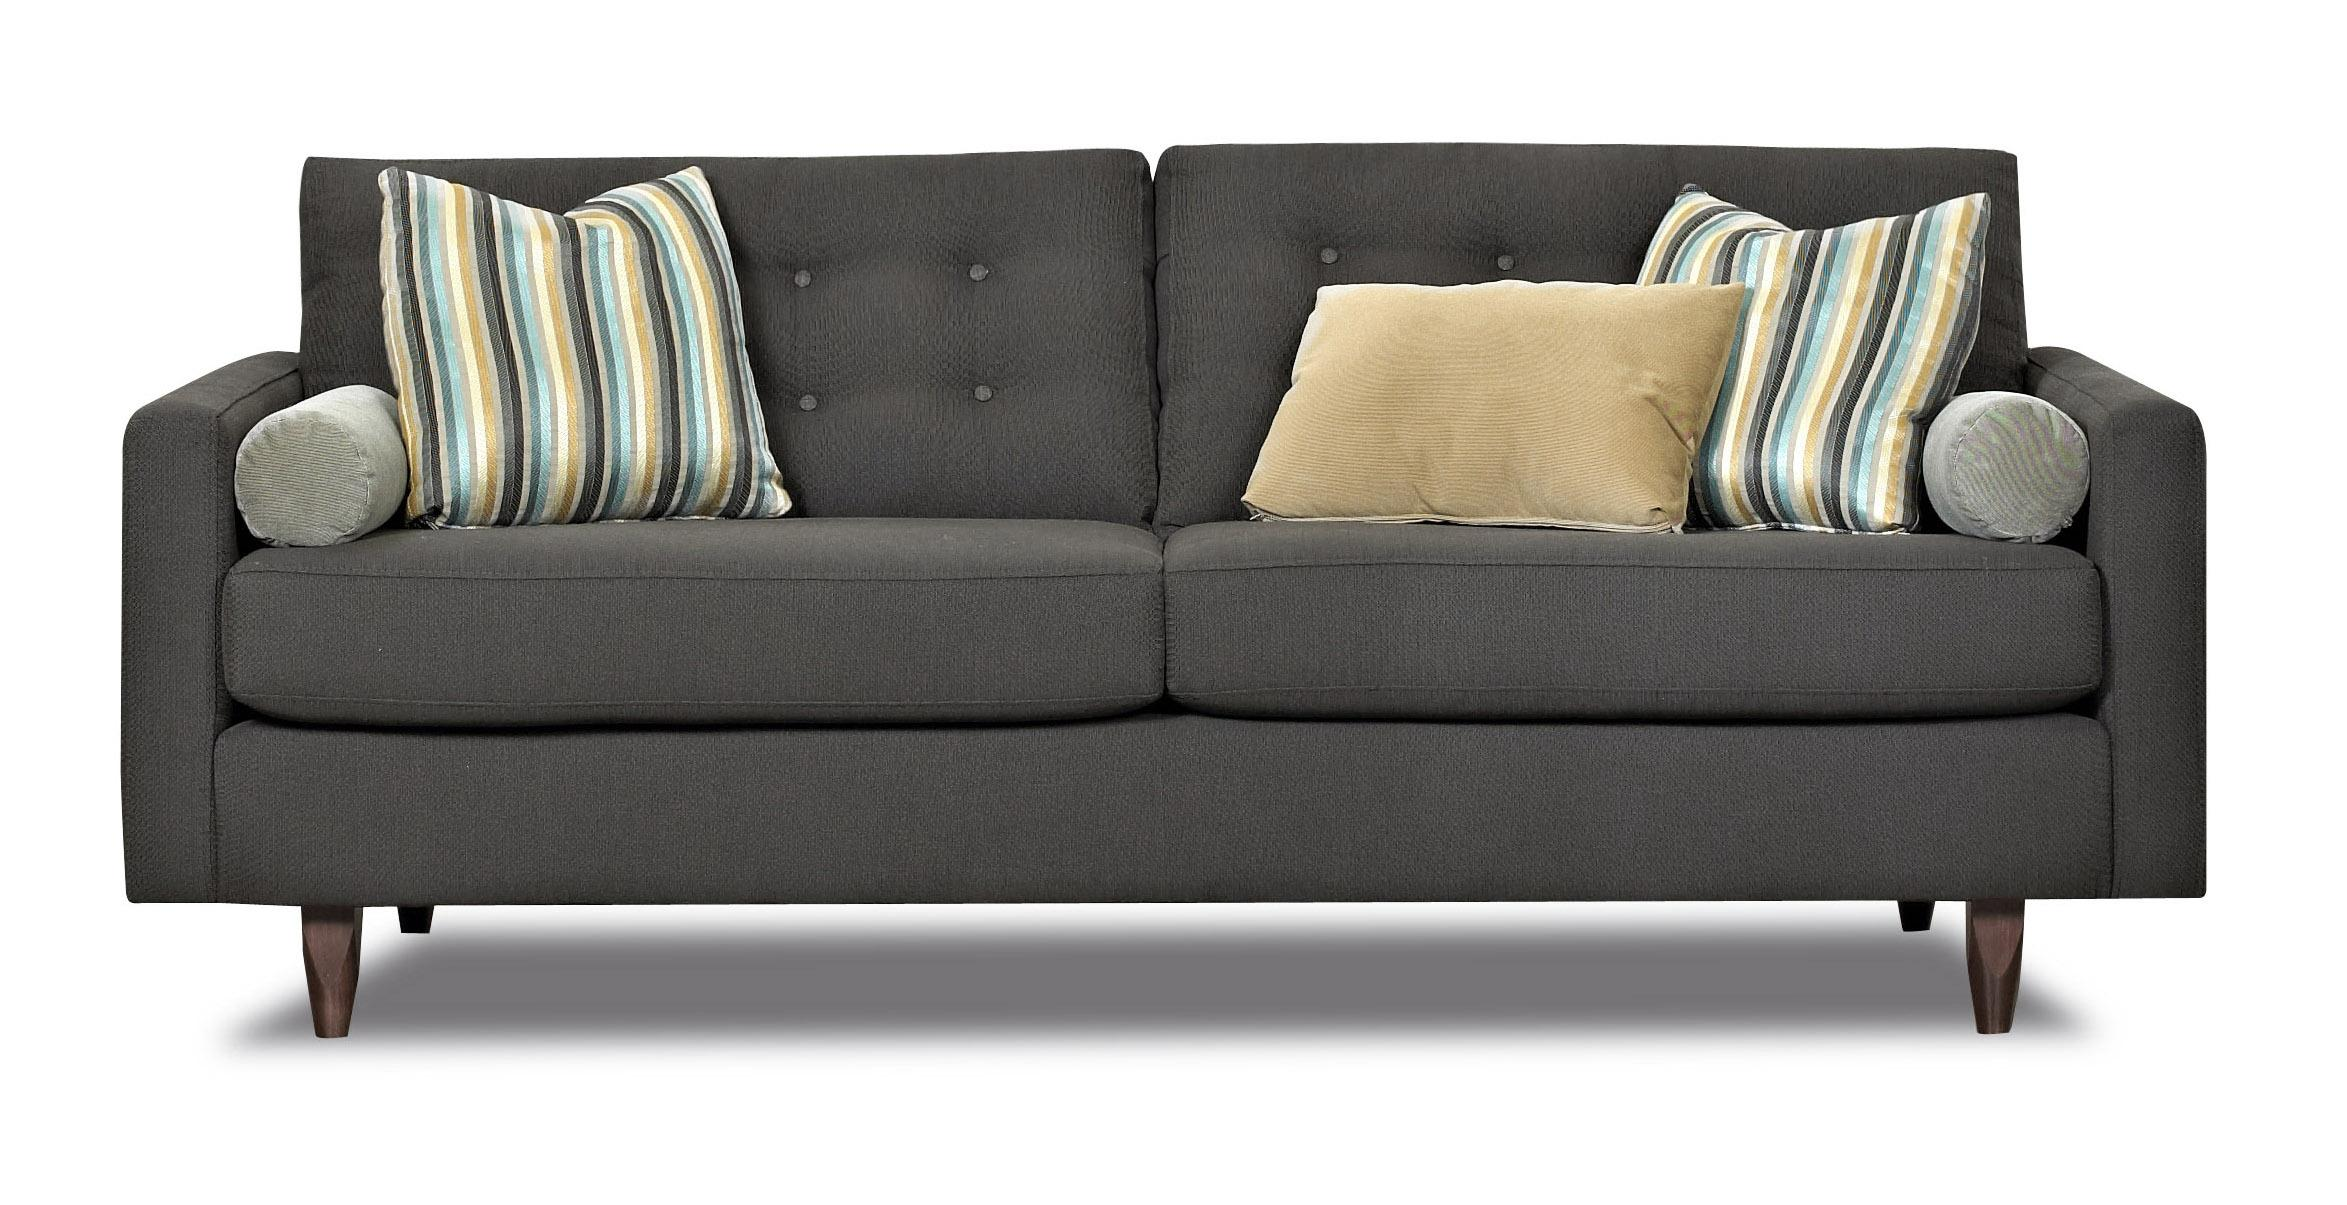 bentley casual sectional sofa with slipcover by klaussner reclining chaise klausner home furnishings asheboro nc - thesofa